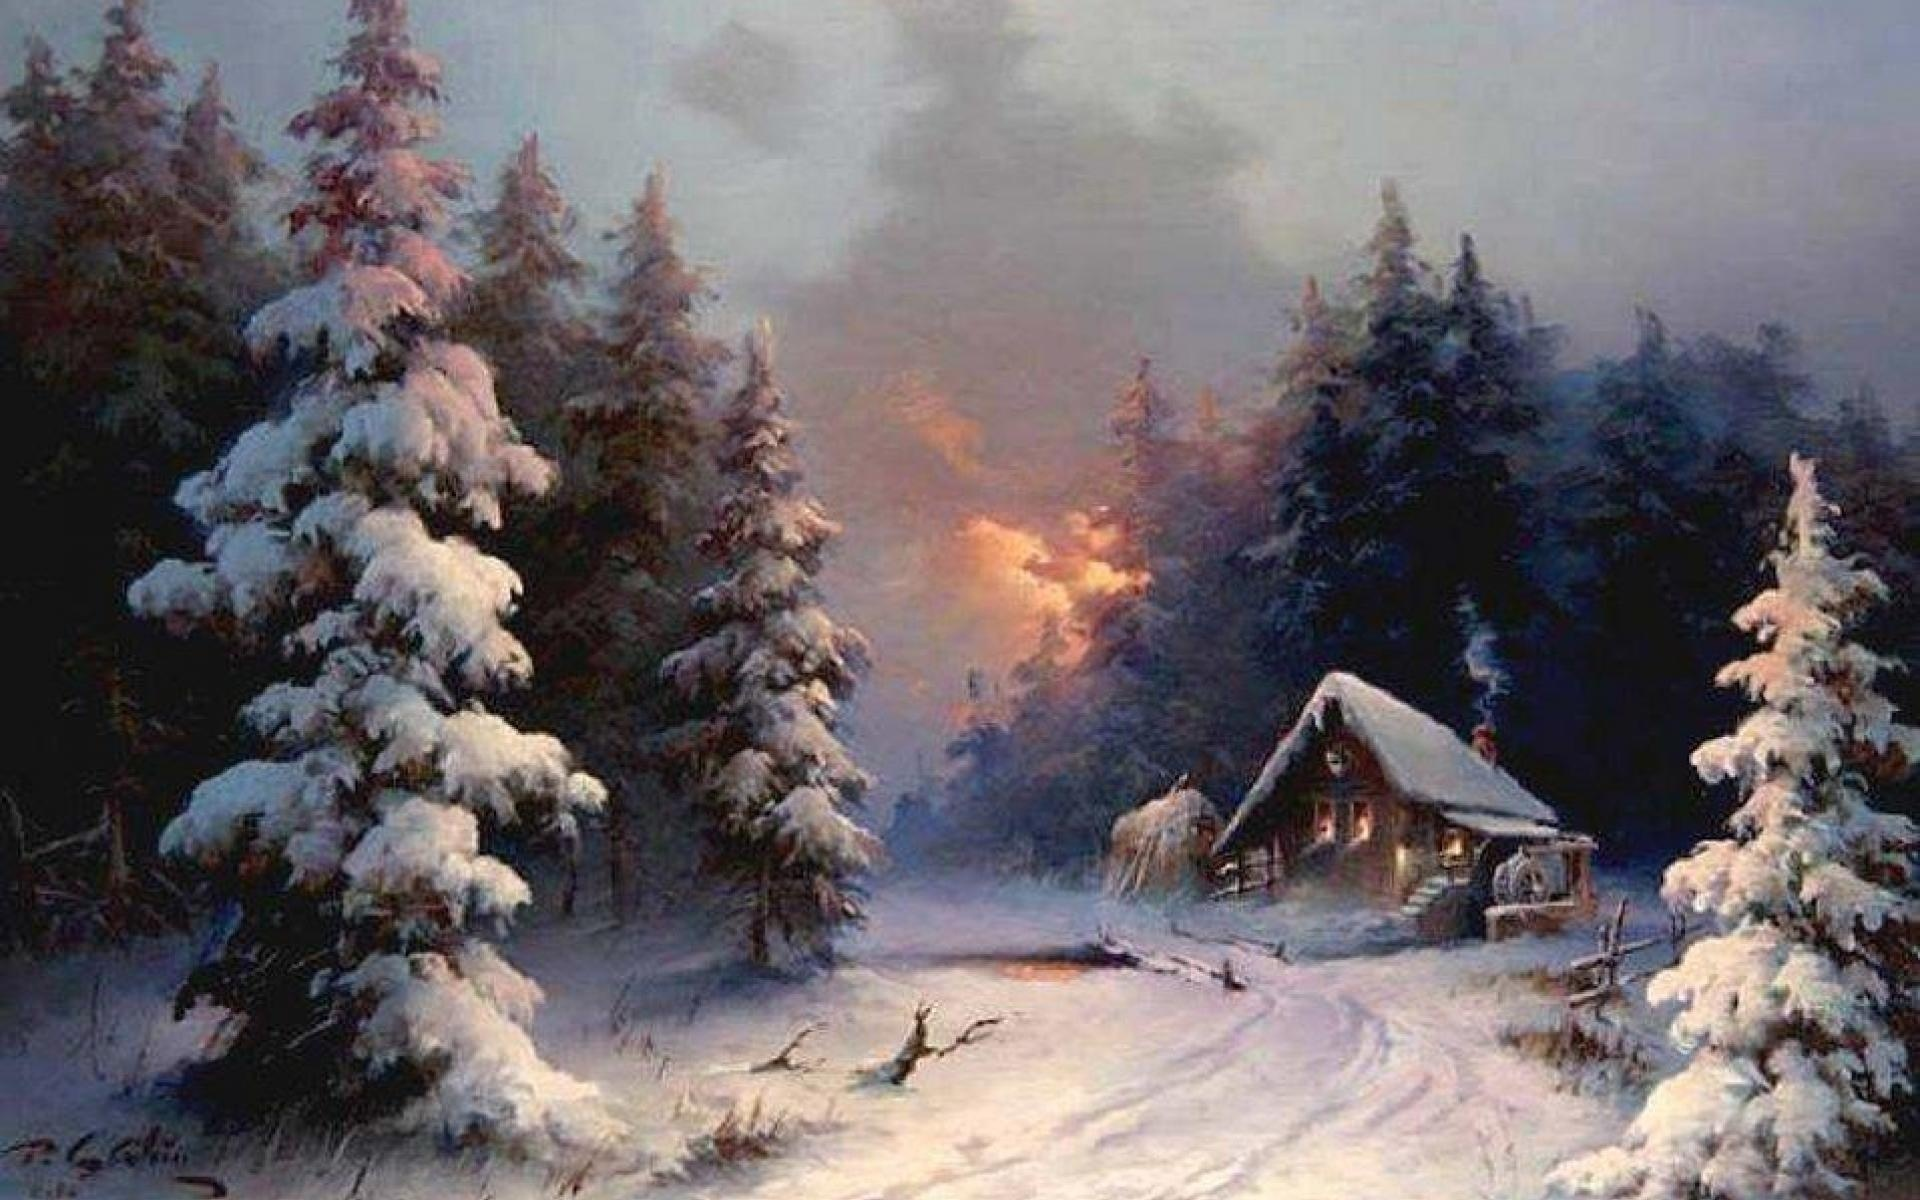 Winter Cabin Wallpapers 46 Wallpapers Adorable Wallpapers